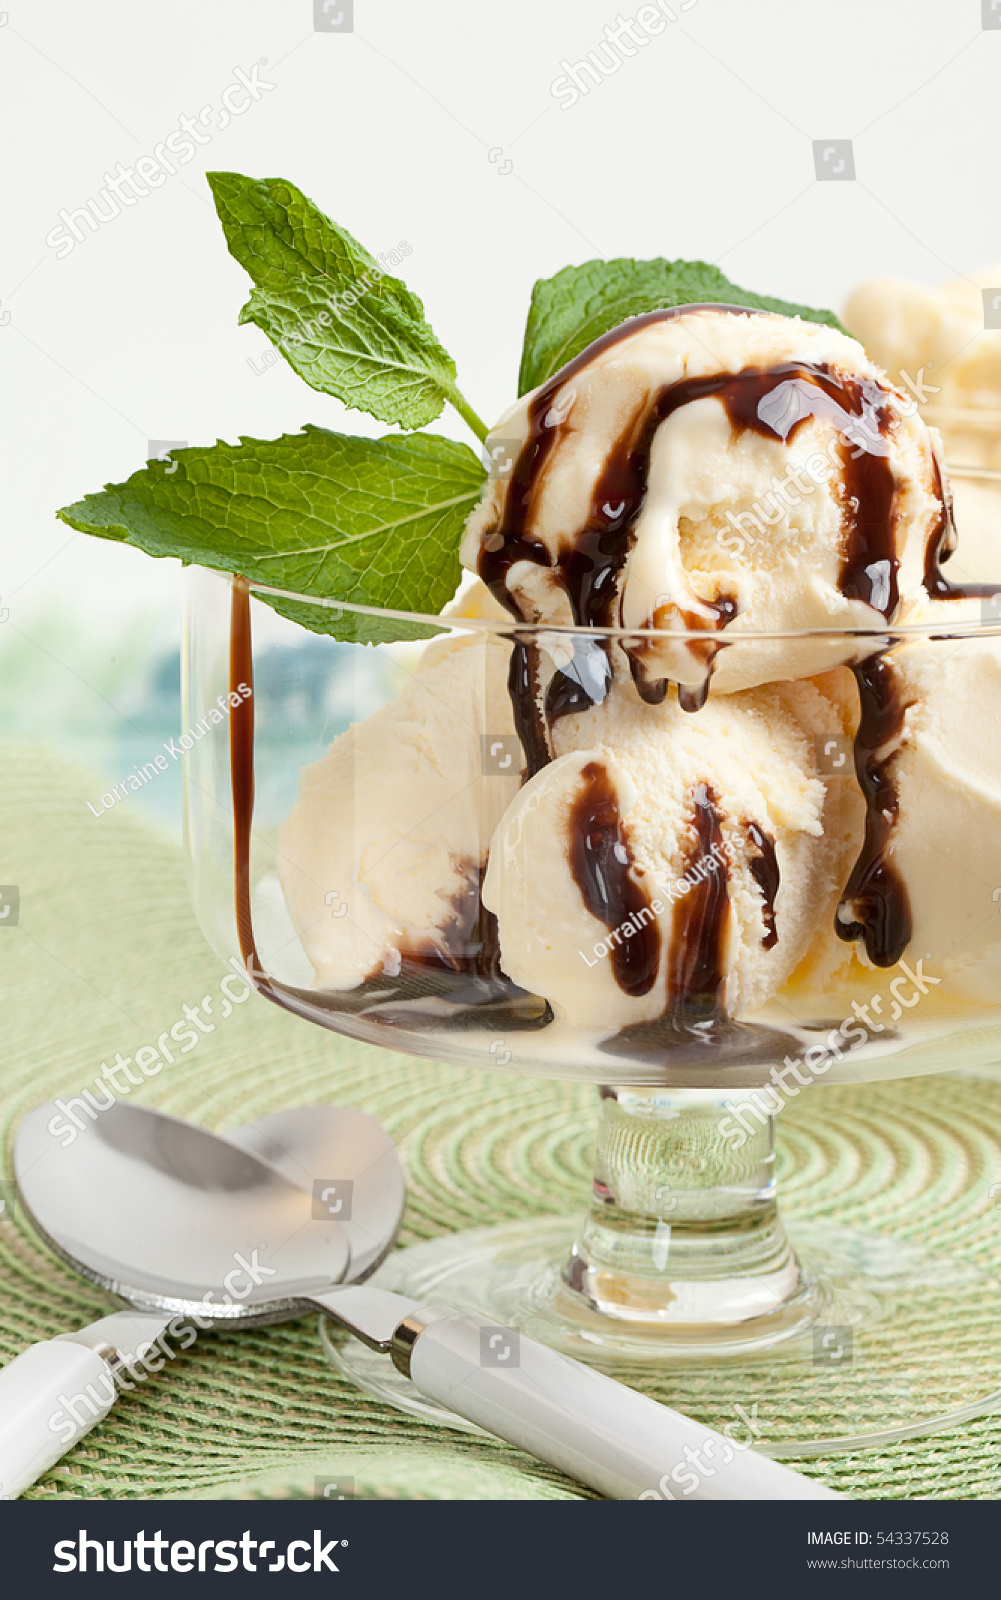 Glass Bowl With Vanilla Ice Cream, With Chocolate Sauce ... Vanilla Ice Cream In A Bowl With Chocolate Syrup